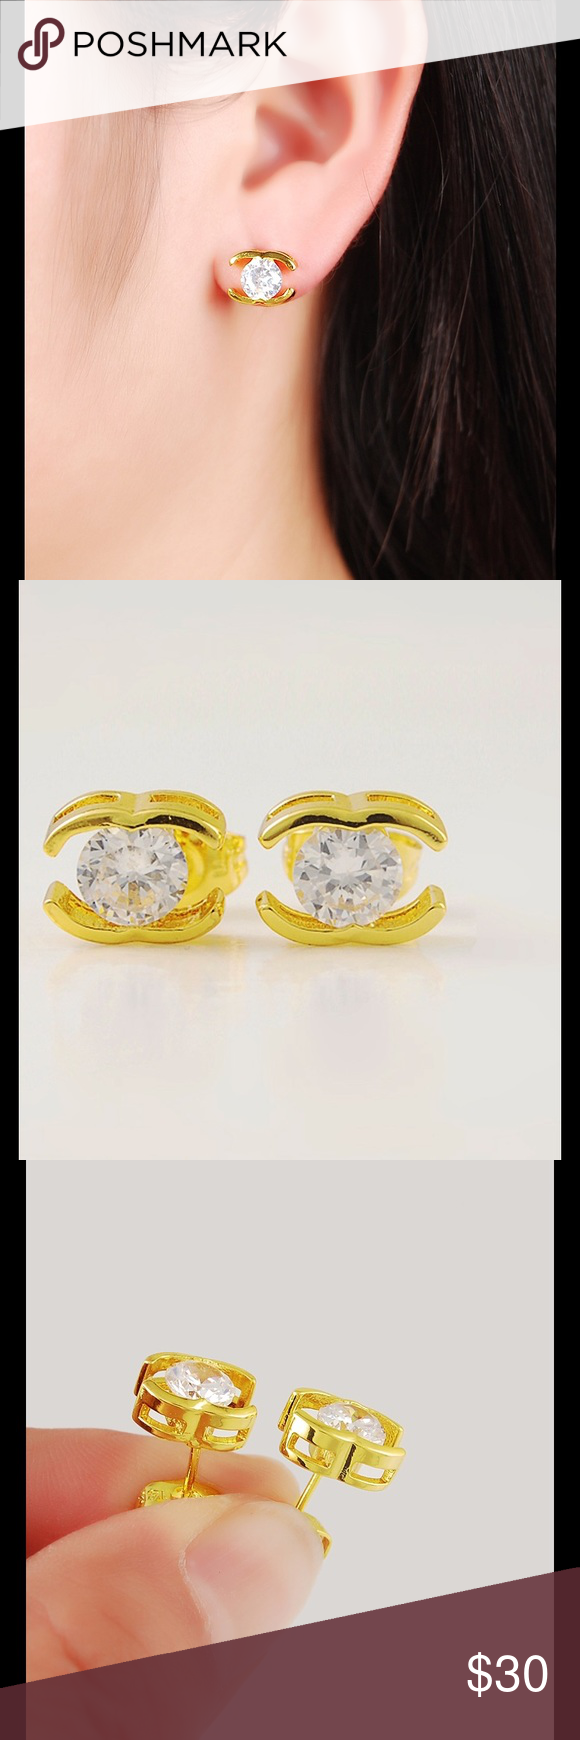 Beautiful Gold Earrings | Gold, Ea and Customer support